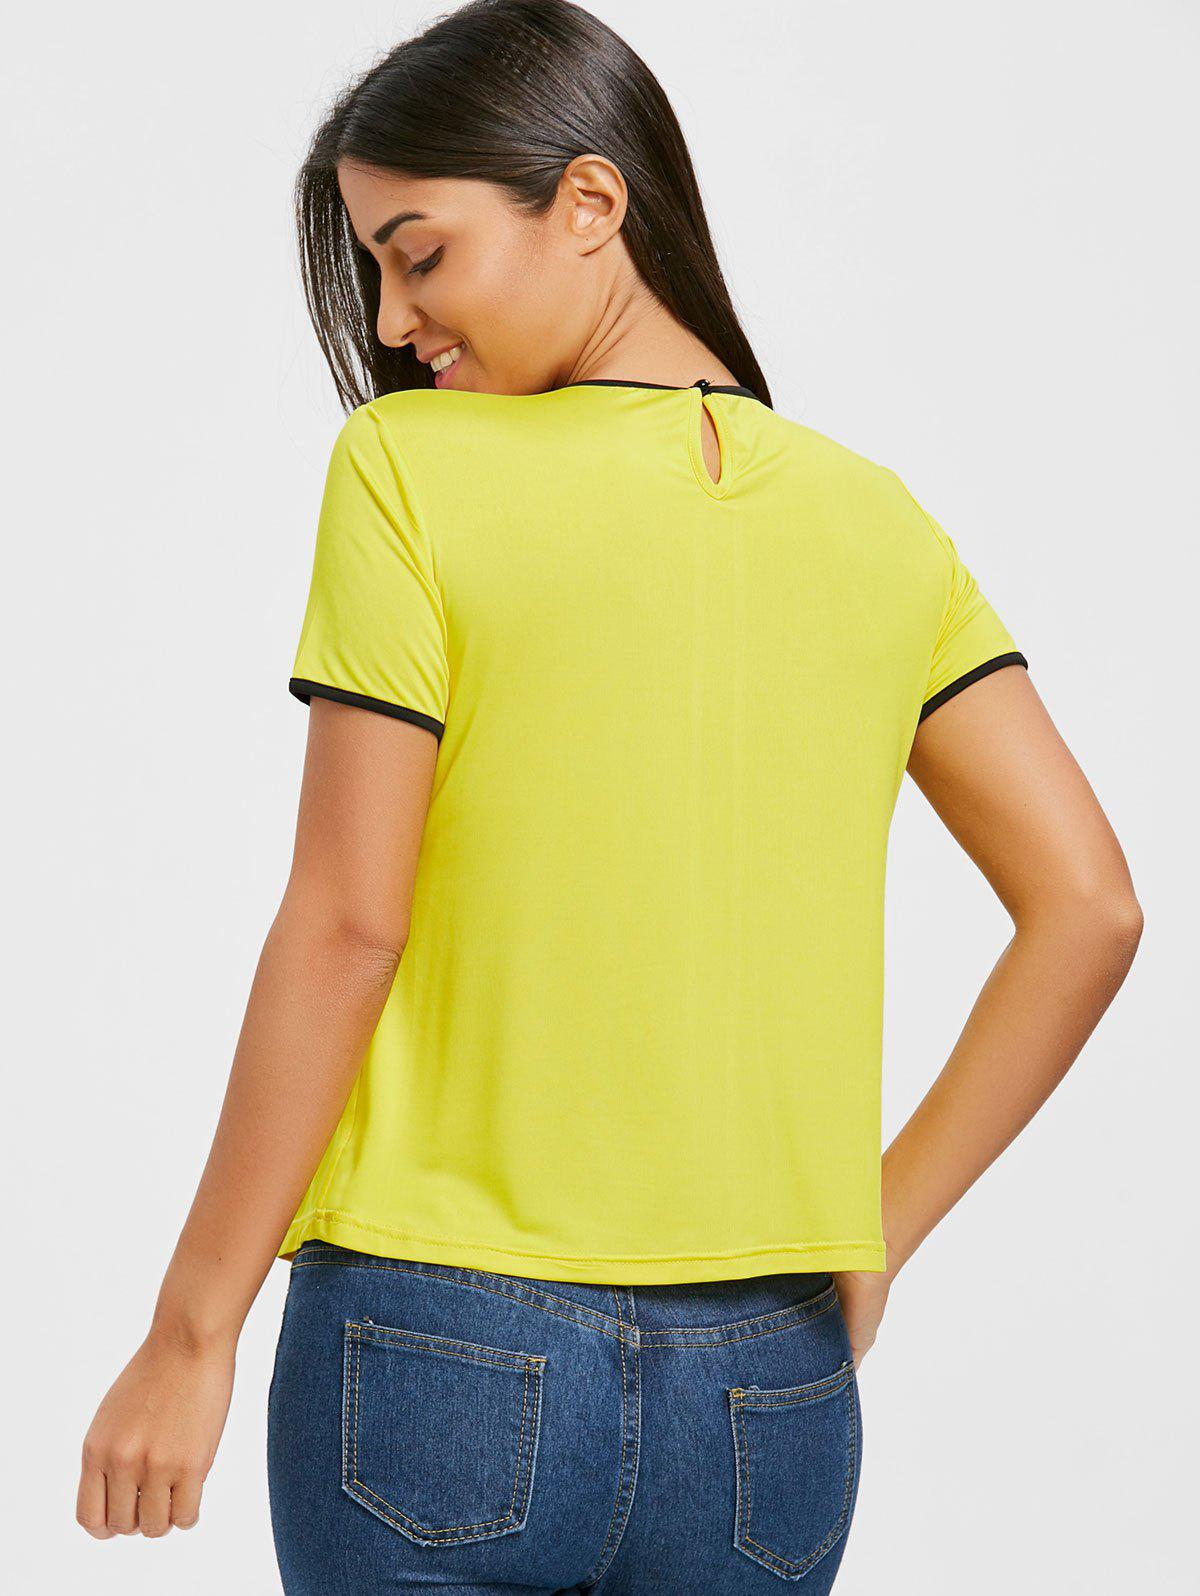 Contrast Trim Self Tie Blouse - YELLOW M